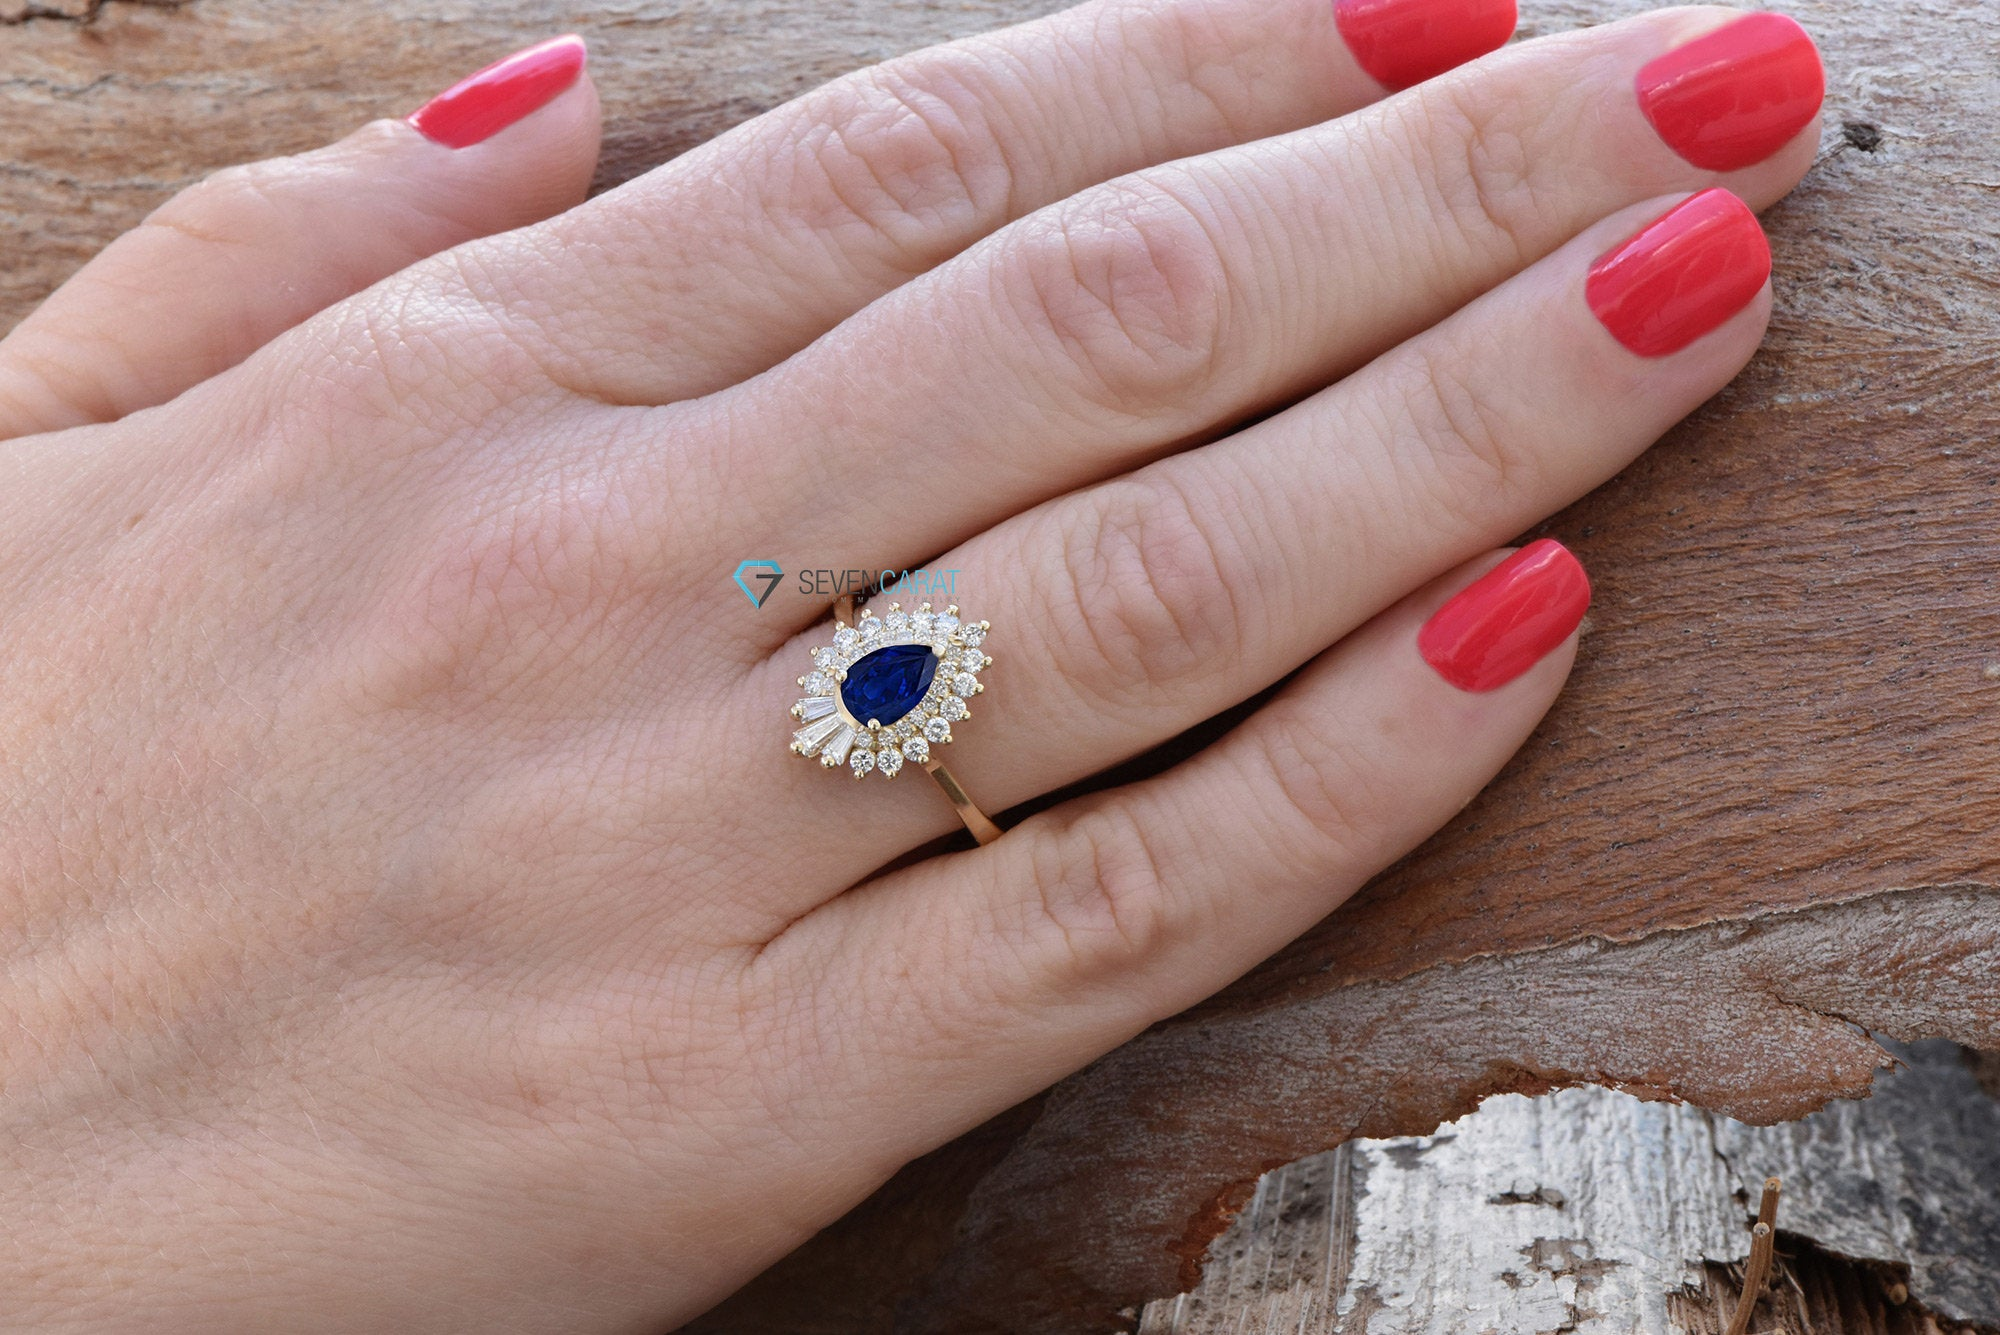 Sapphire engagement ring vintage-14K Yellow Gold-Pear shaped diamond engagement ring-Promise ring-Baguette diamond ring - SevenCarat